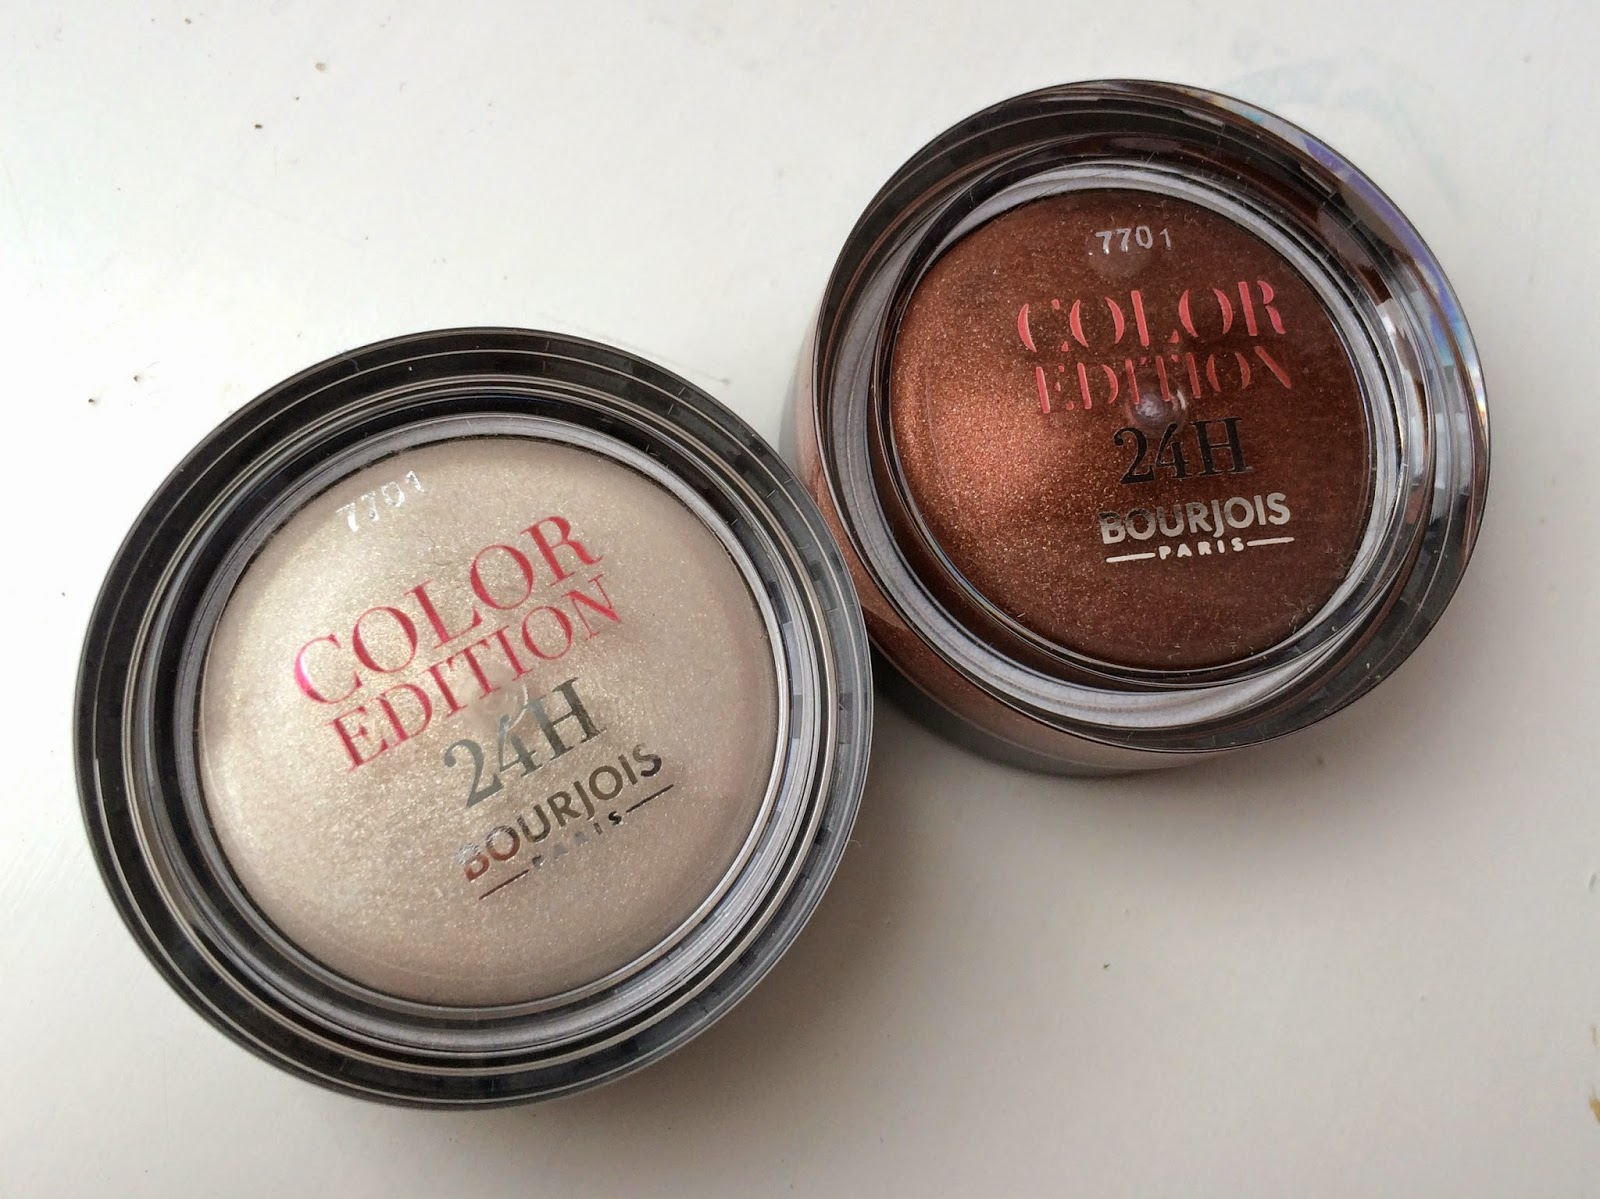 bourjois-24h-eyeshadow-flocon-d'or-marron-givret-autumn-winter-2014-new